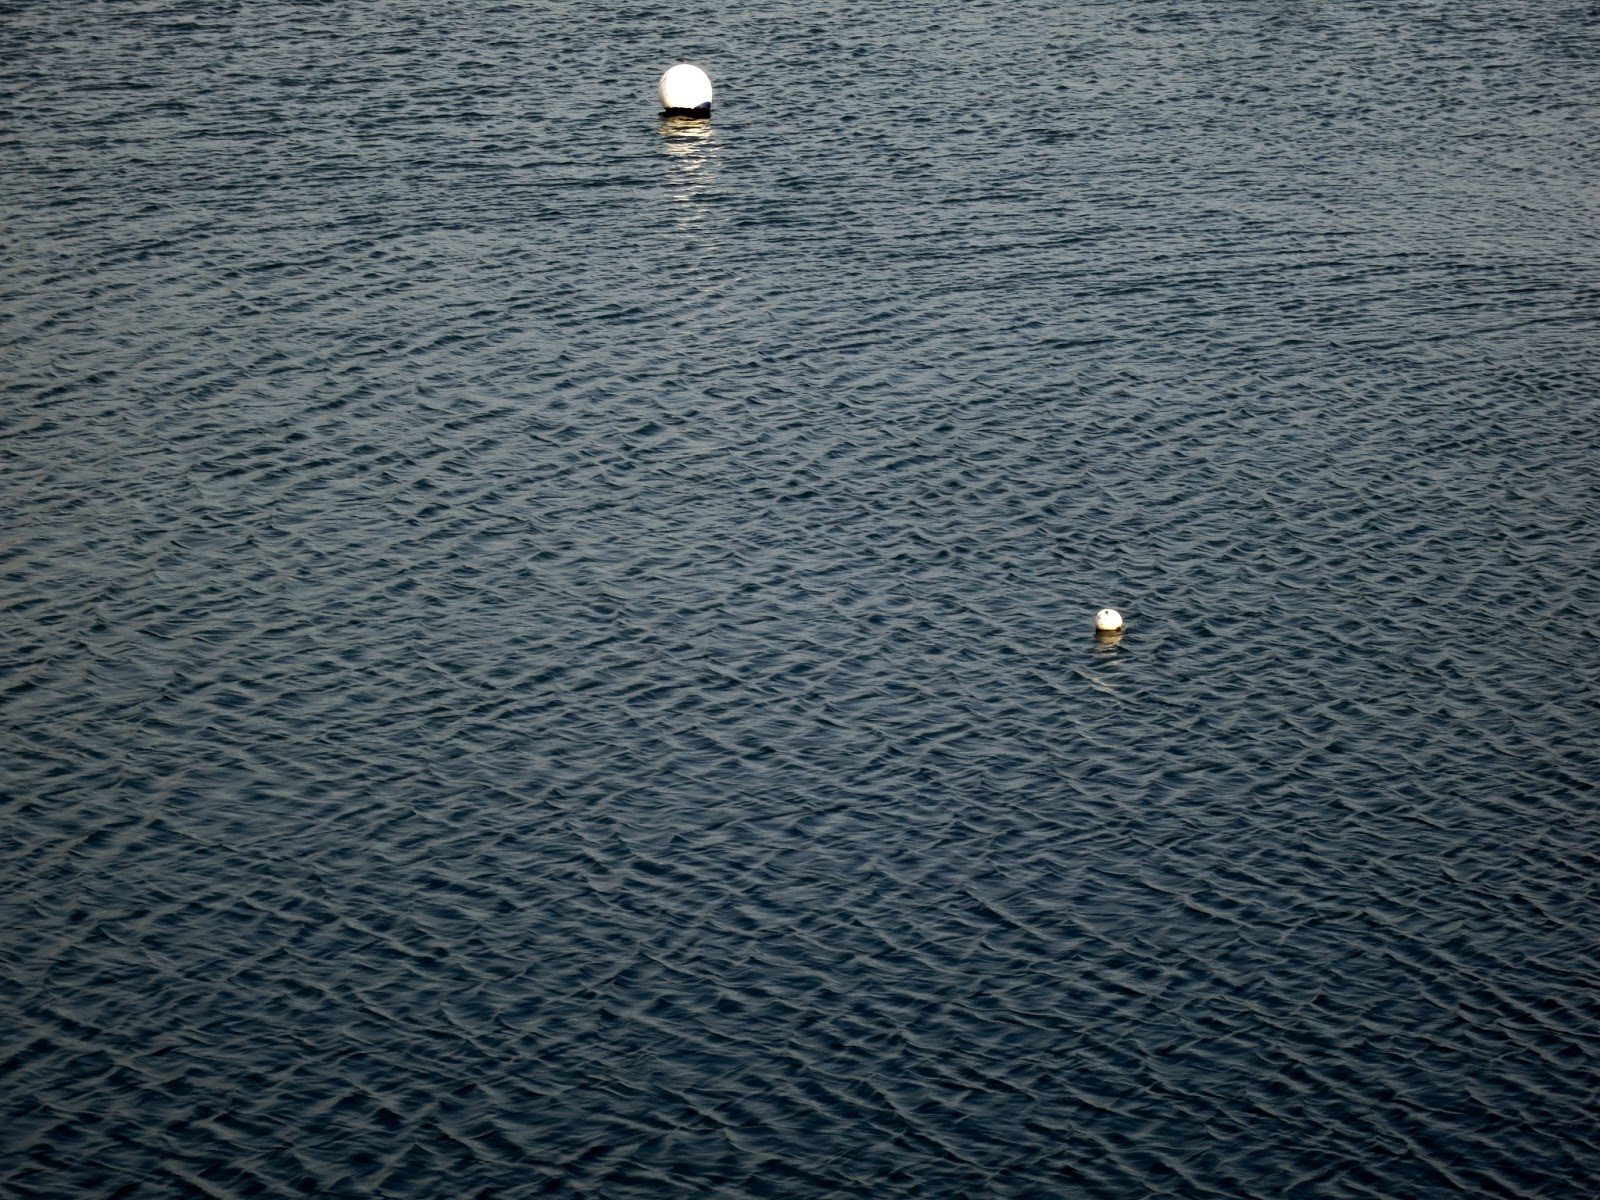 Large area of highly rippled water and two white buoys with reflections.